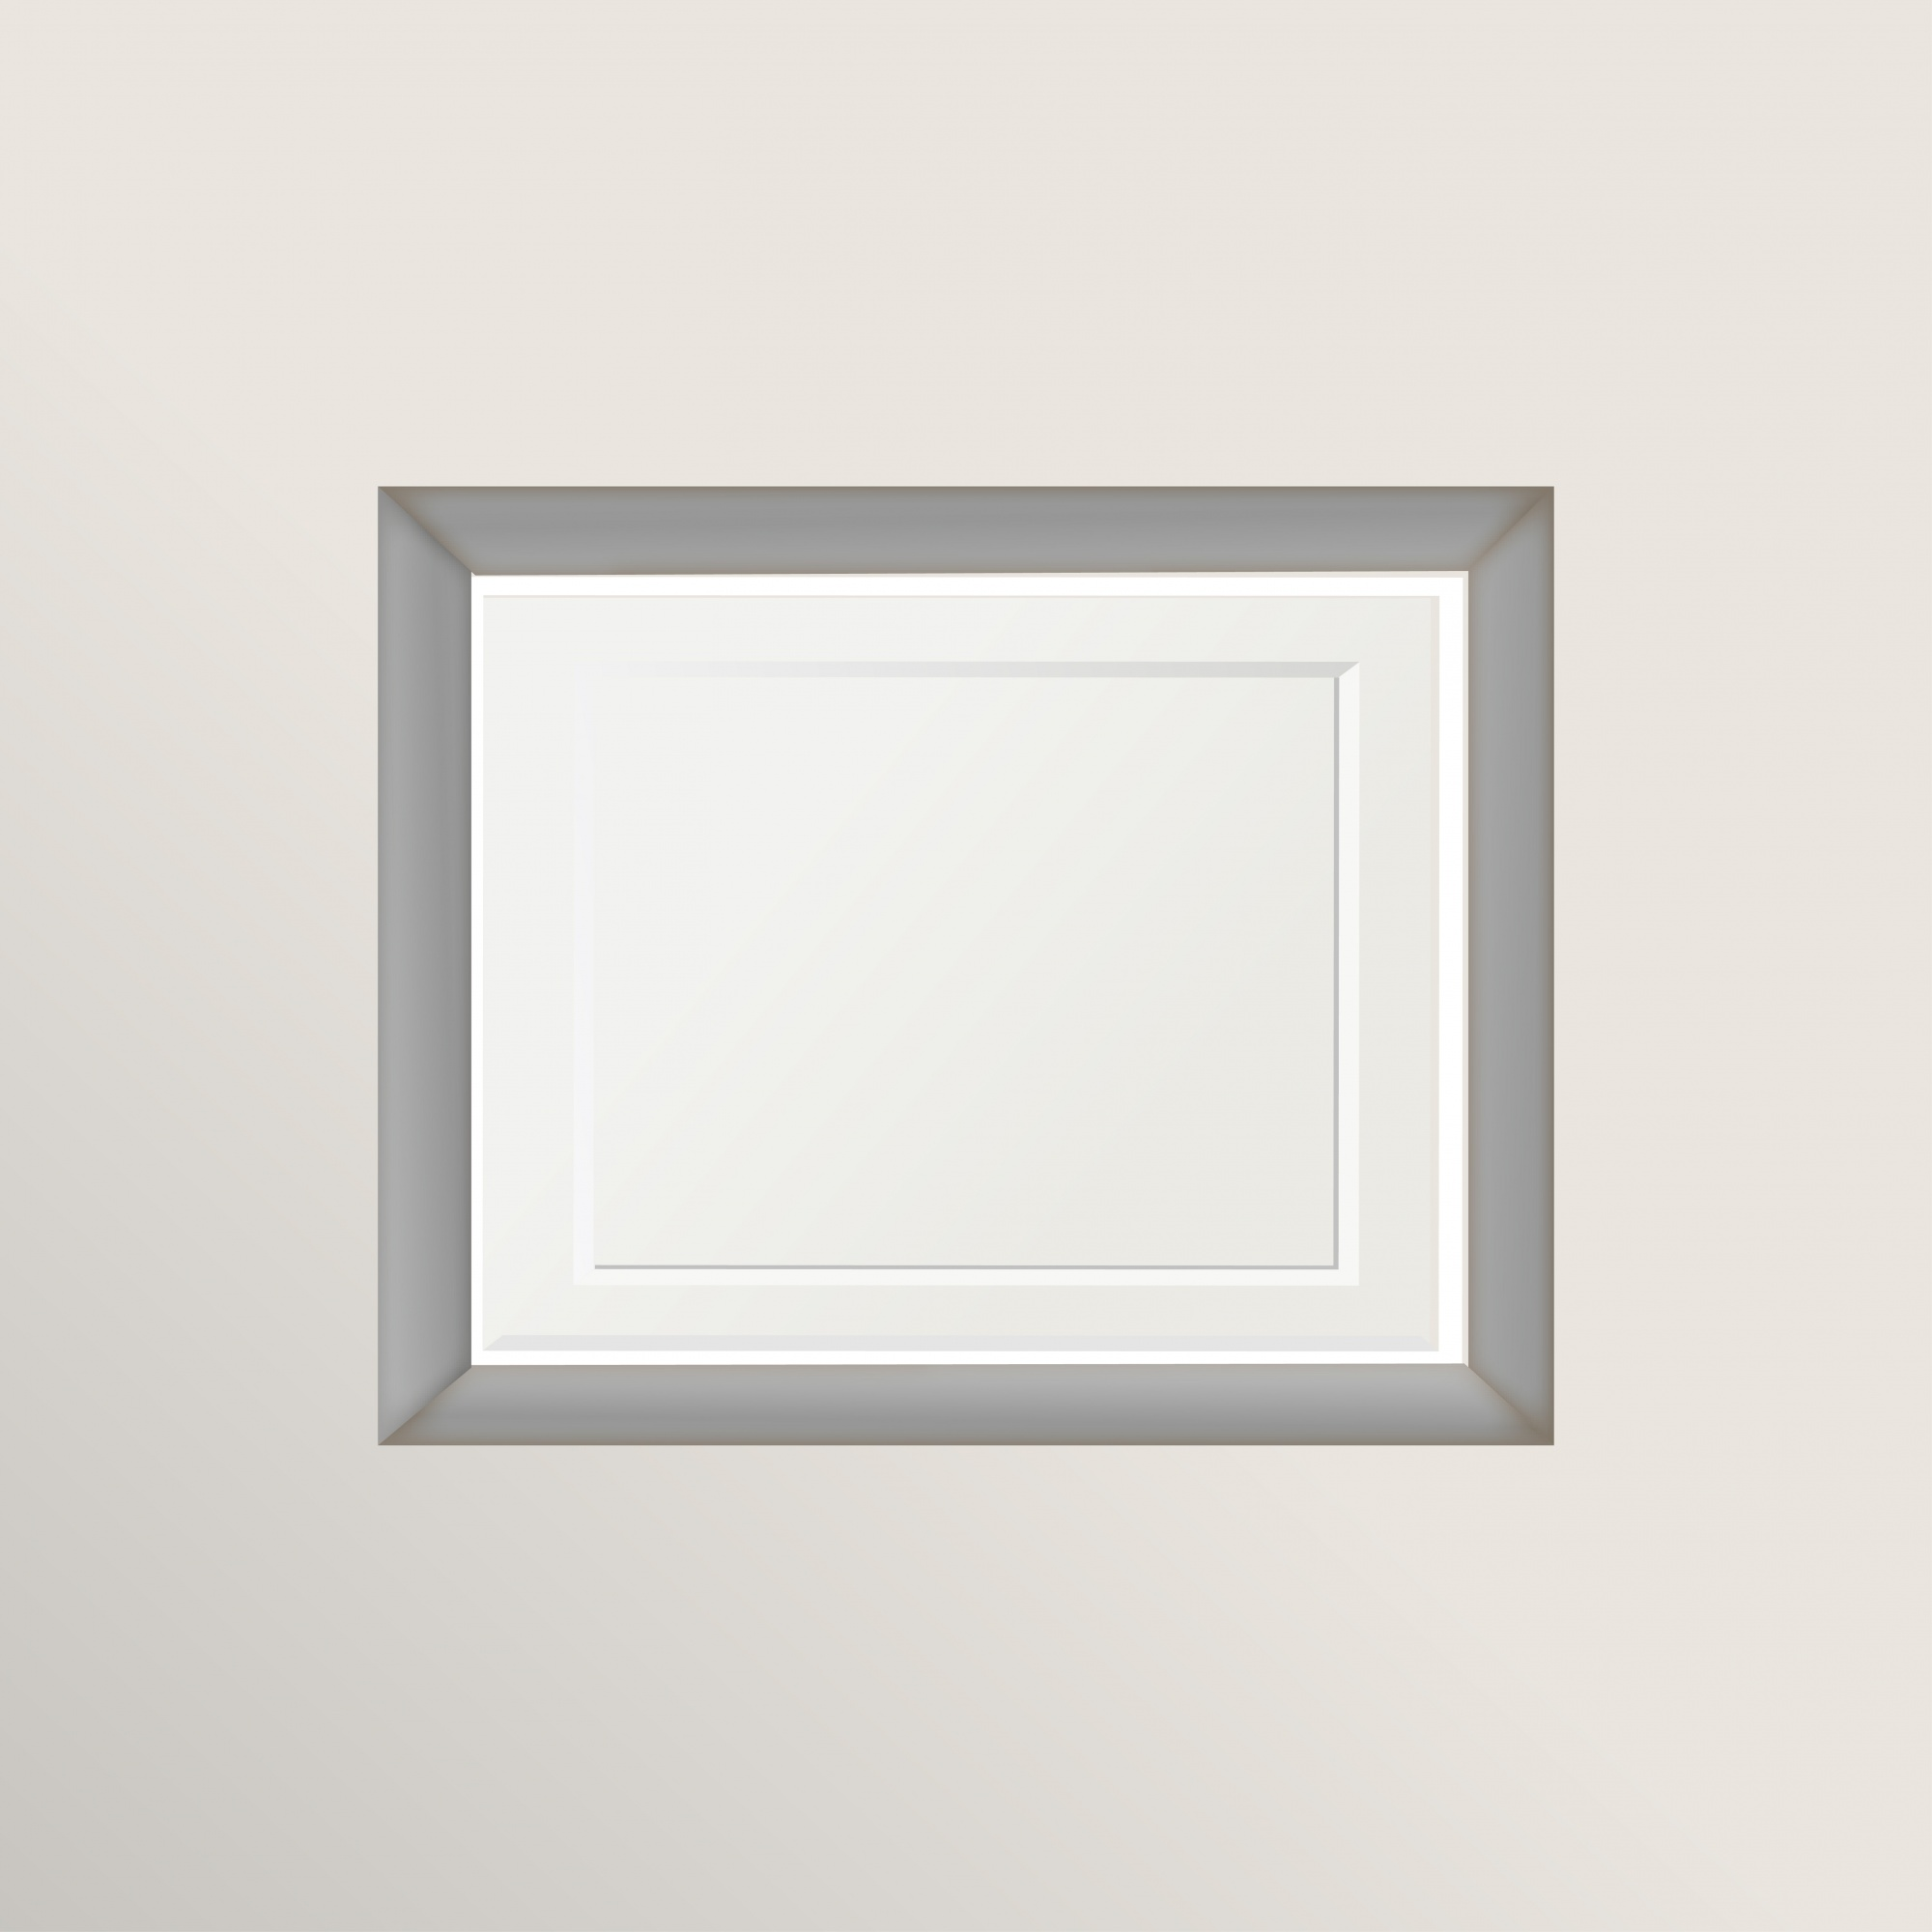 White and gray frame